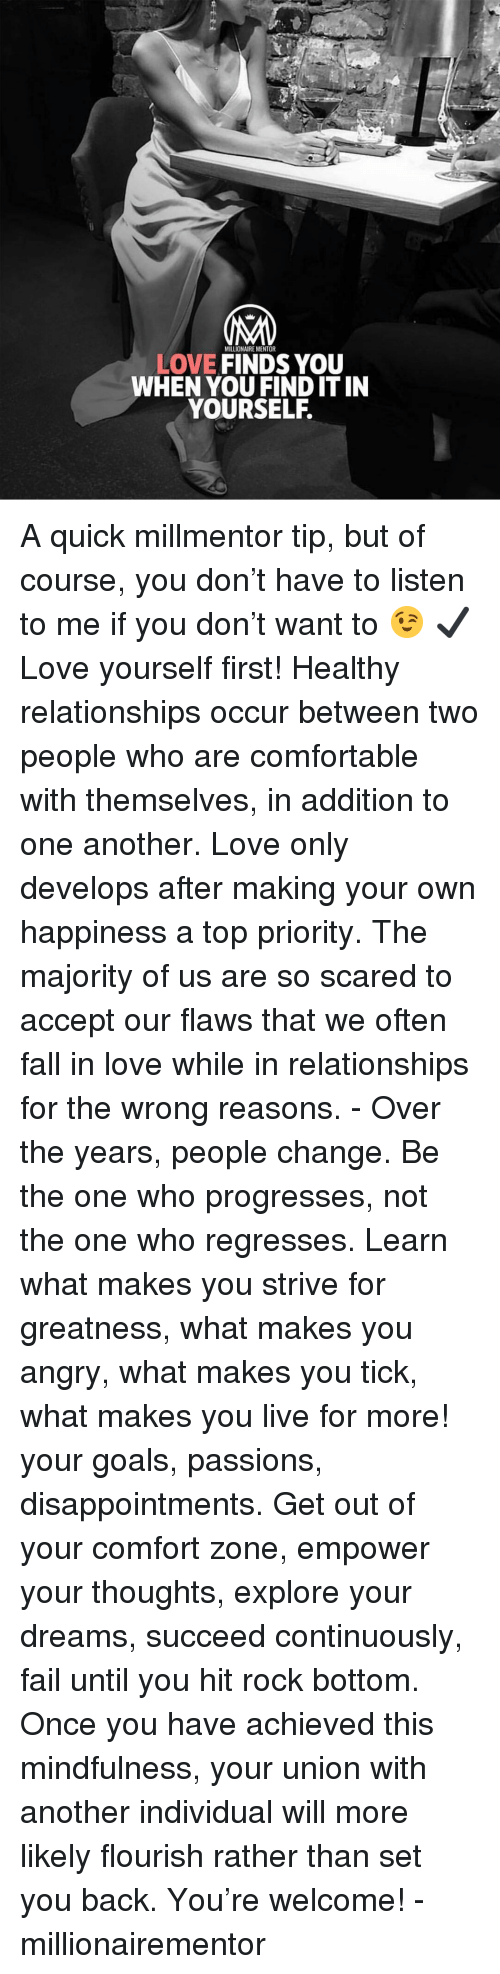 Comfortable, Fail, and Fall: MILLIONAIRE MENTOR  LOVE FINDS YOU  WHEN YOU FIND IT IN  YOURSELF. A quick millmentor tip, but of course, you don't have to listen to me if you don't want to 😉 ✔️Love yourself first! Healthy relationships occur between two people who are comfortable with themselves, in addition to one another. Love only develops after making your own happiness a top priority. The majority of us are so scared to accept our flaws that we often fall in love while in relationships for the wrong reasons. - Over the years, people change. Be the one who progresses, not the one who regresses. Learn what makes you strive for greatness, what makes you angry, what makes you tick, what makes you live for more! your goals, passions, disappointments. Get out of your comfort zone, empower your thoughts, explore your dreams, succeed continuously, fail until you hit rock bottom. Once you have achieved this mindfulness, your union with another individual will more likely flourish rather than set you back. You're welcome! - millionairementor